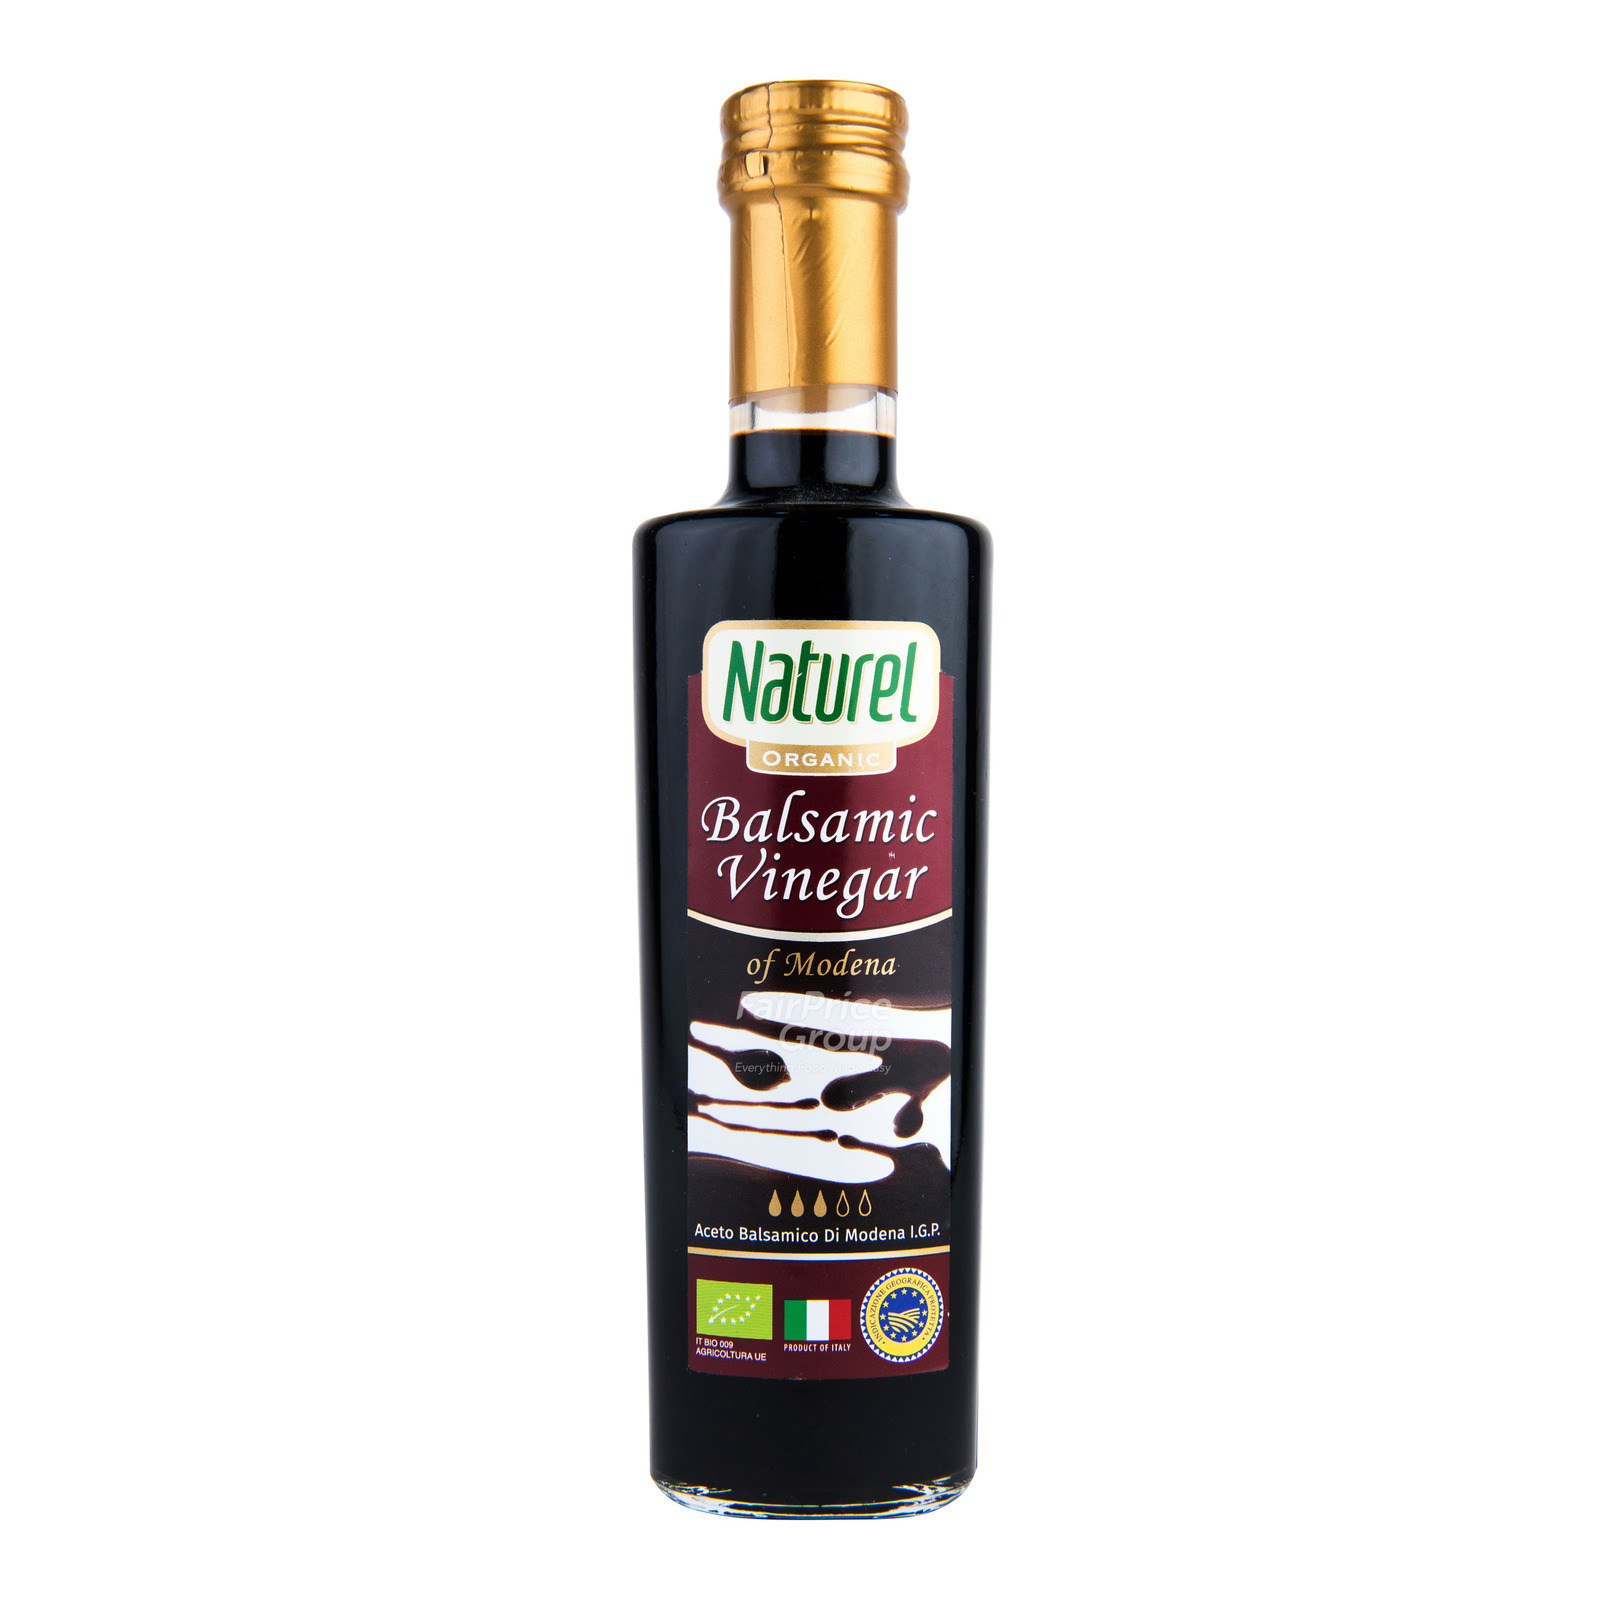 Naturel Organic Balsamic Vinegar